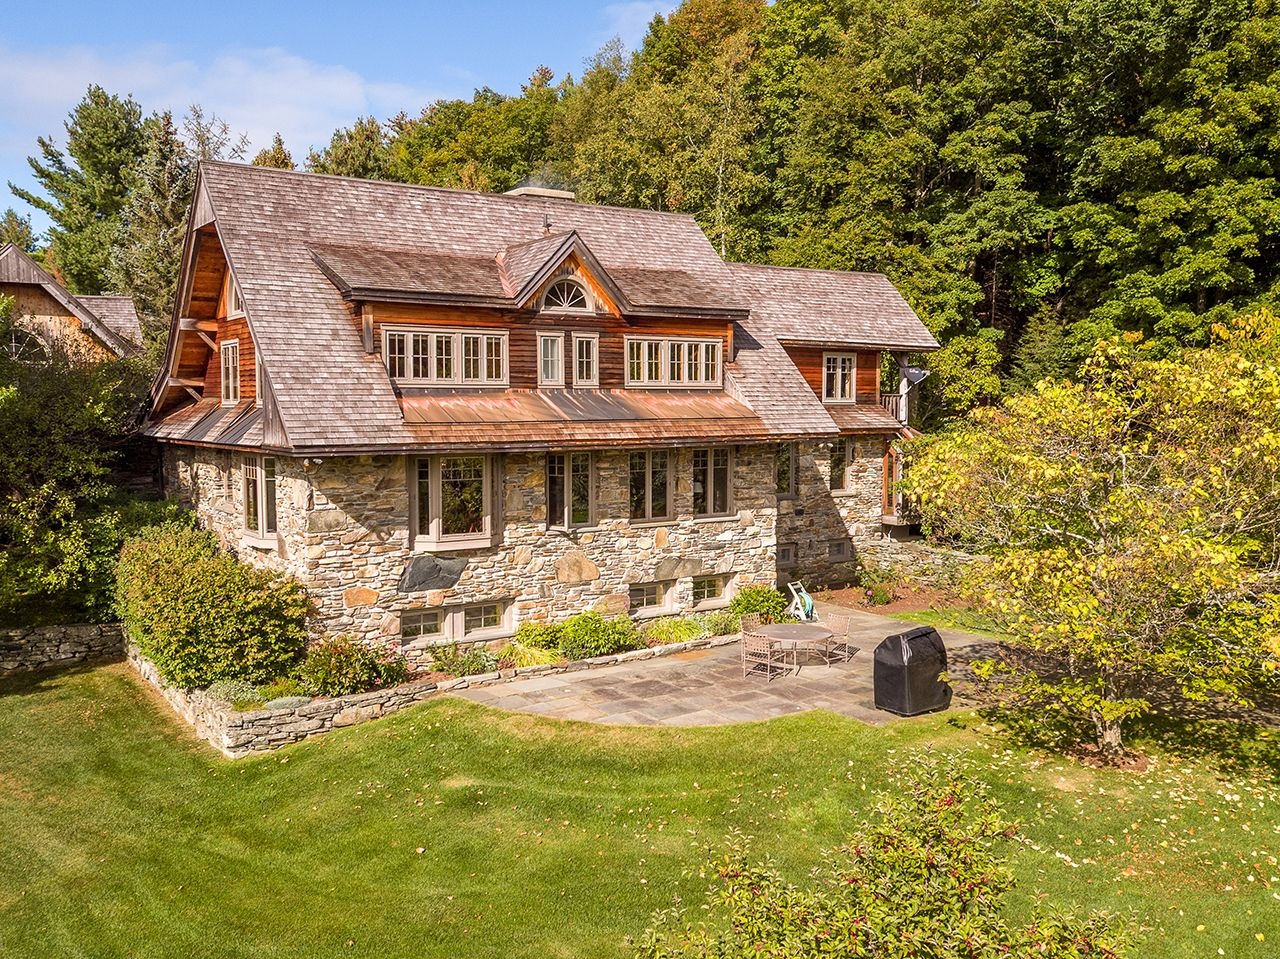 Single Family Home for Sale at Stone Cottage 853 Sayer Rd Barnard, Vermont,05031 United States